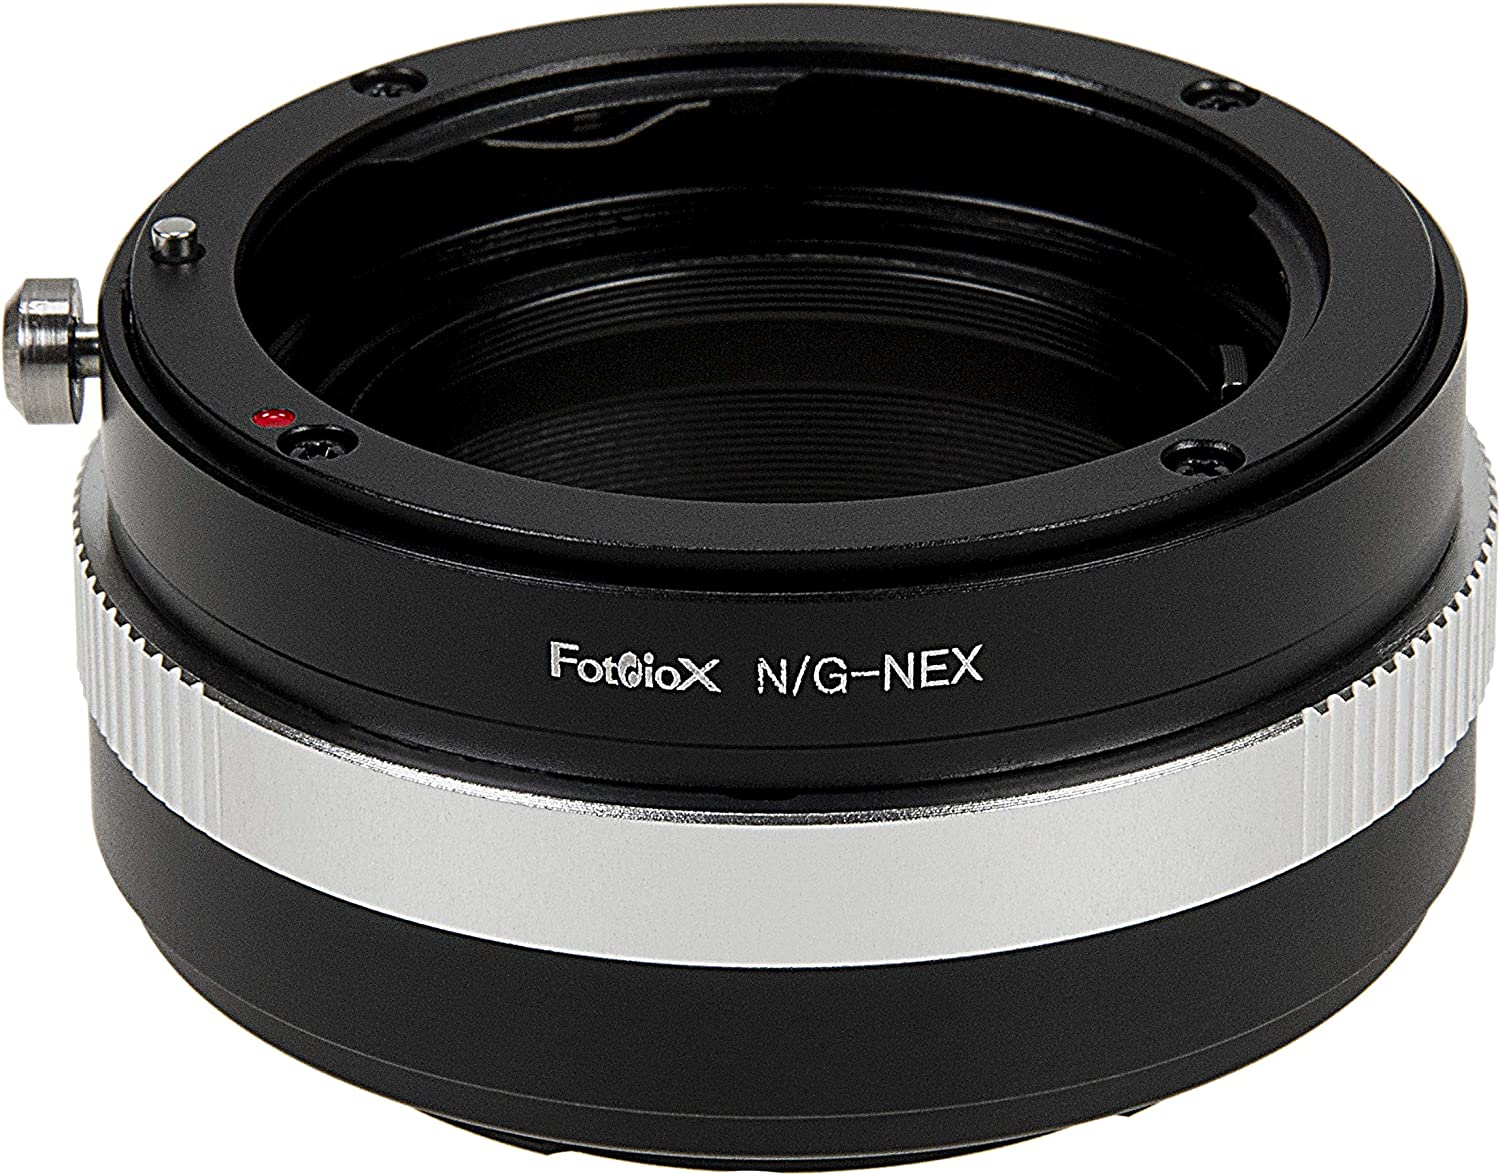 Fotodiox Lens Mount Adapter - Nikon Nikkor F Mount G-Type D/SLR Lens to Sony Alpha E-Mount Mirrorless Camera Body